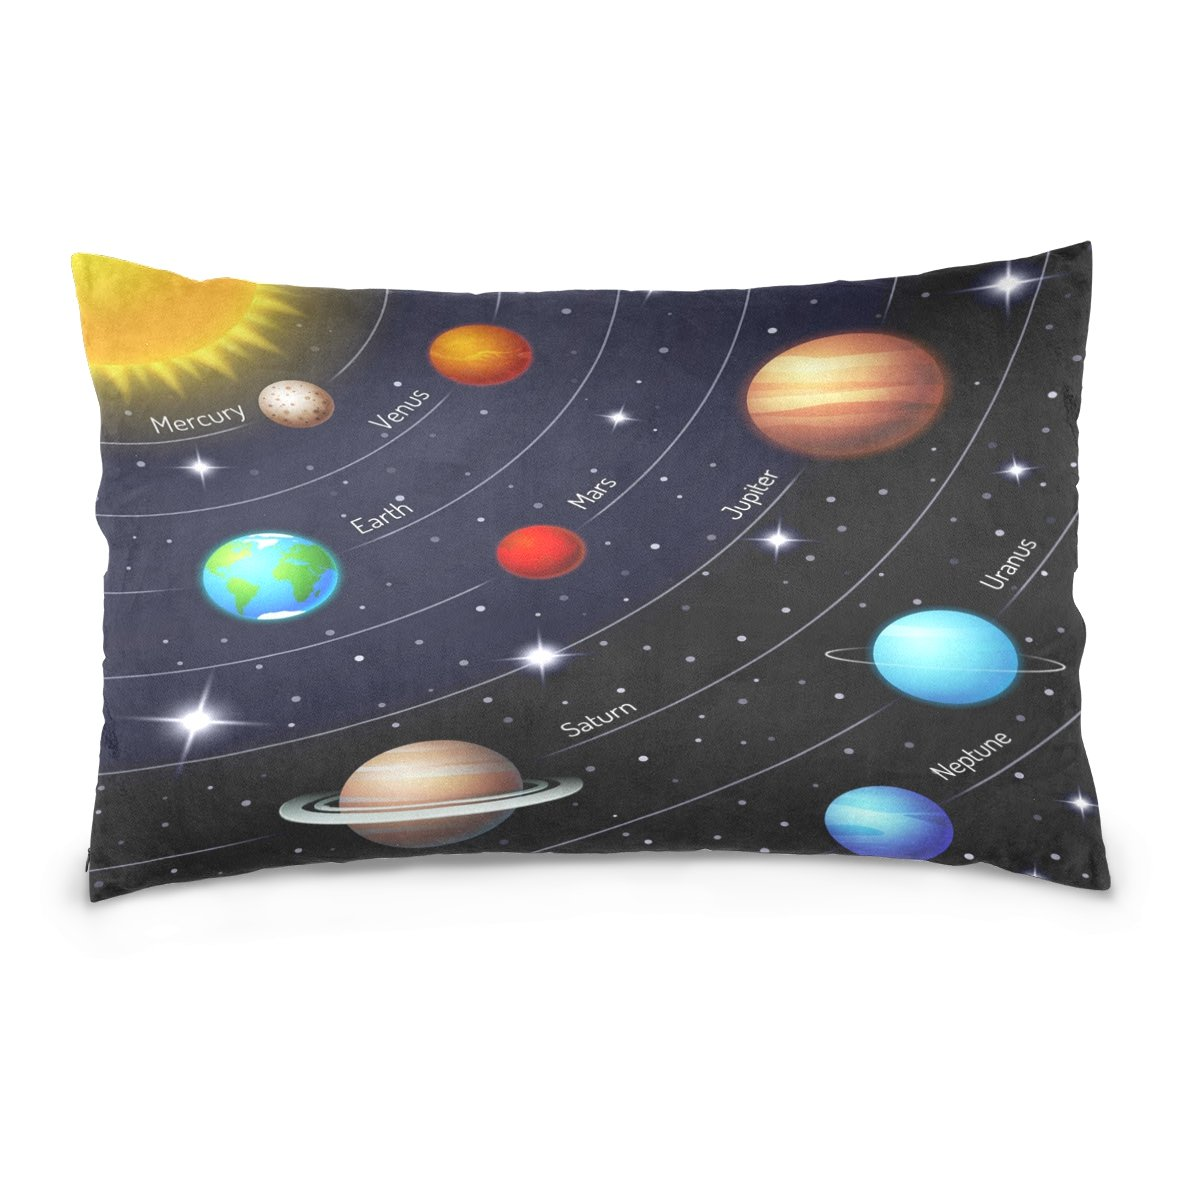 ALAZA Colorful Space Elements Planet Solar System Cotton Lint Pillow Case,Double-sided Printing Home Decor Pillowcase Size 16''x24'',for Bedroom Women Girl Boy